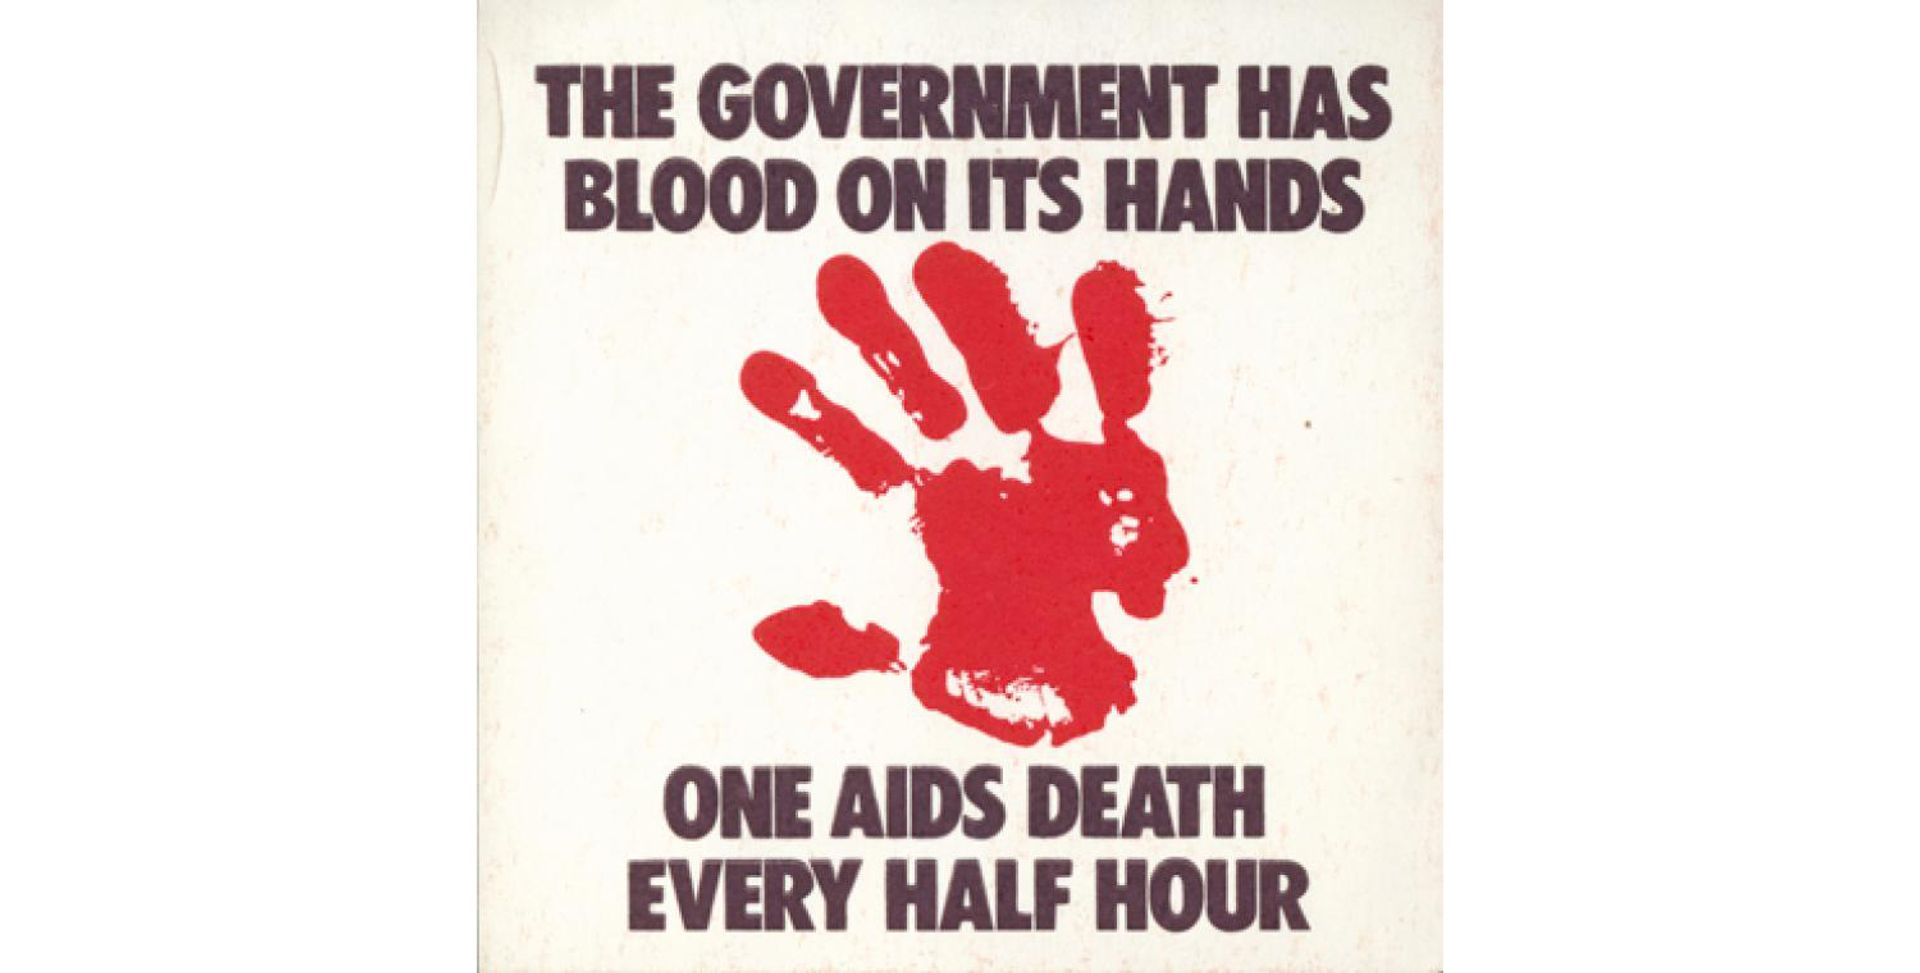 A poster by the ACT UP Collective Gran Fury reads: The government has blood on its hands